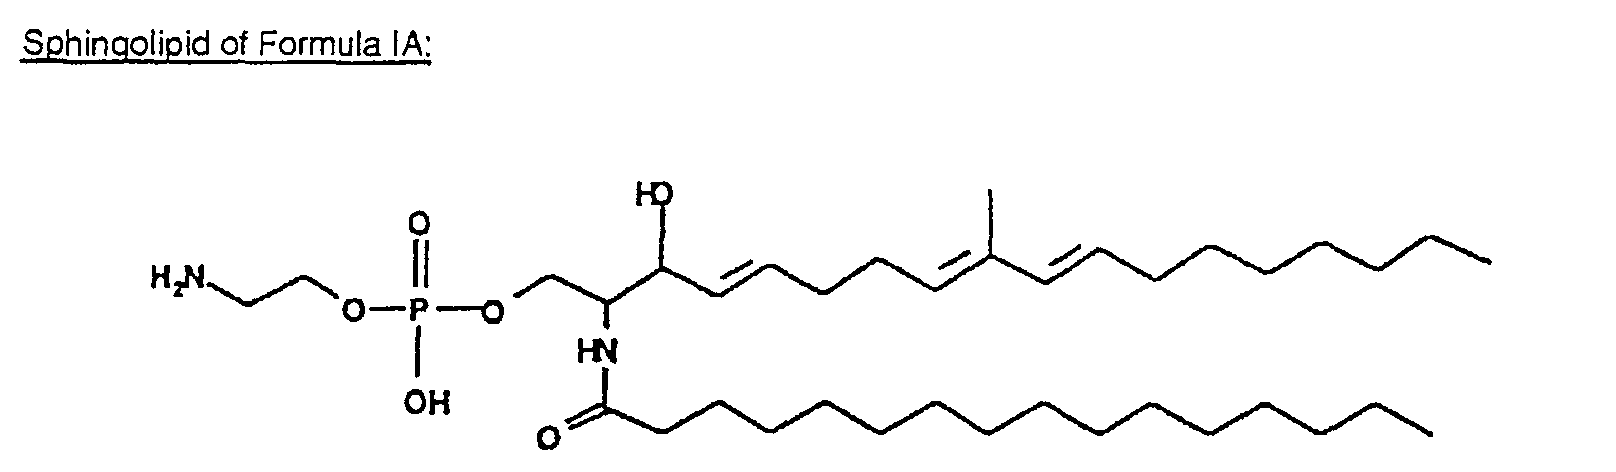 Example 2  Isolation and characterization of sphingolipids from    Sphingolipid Structure